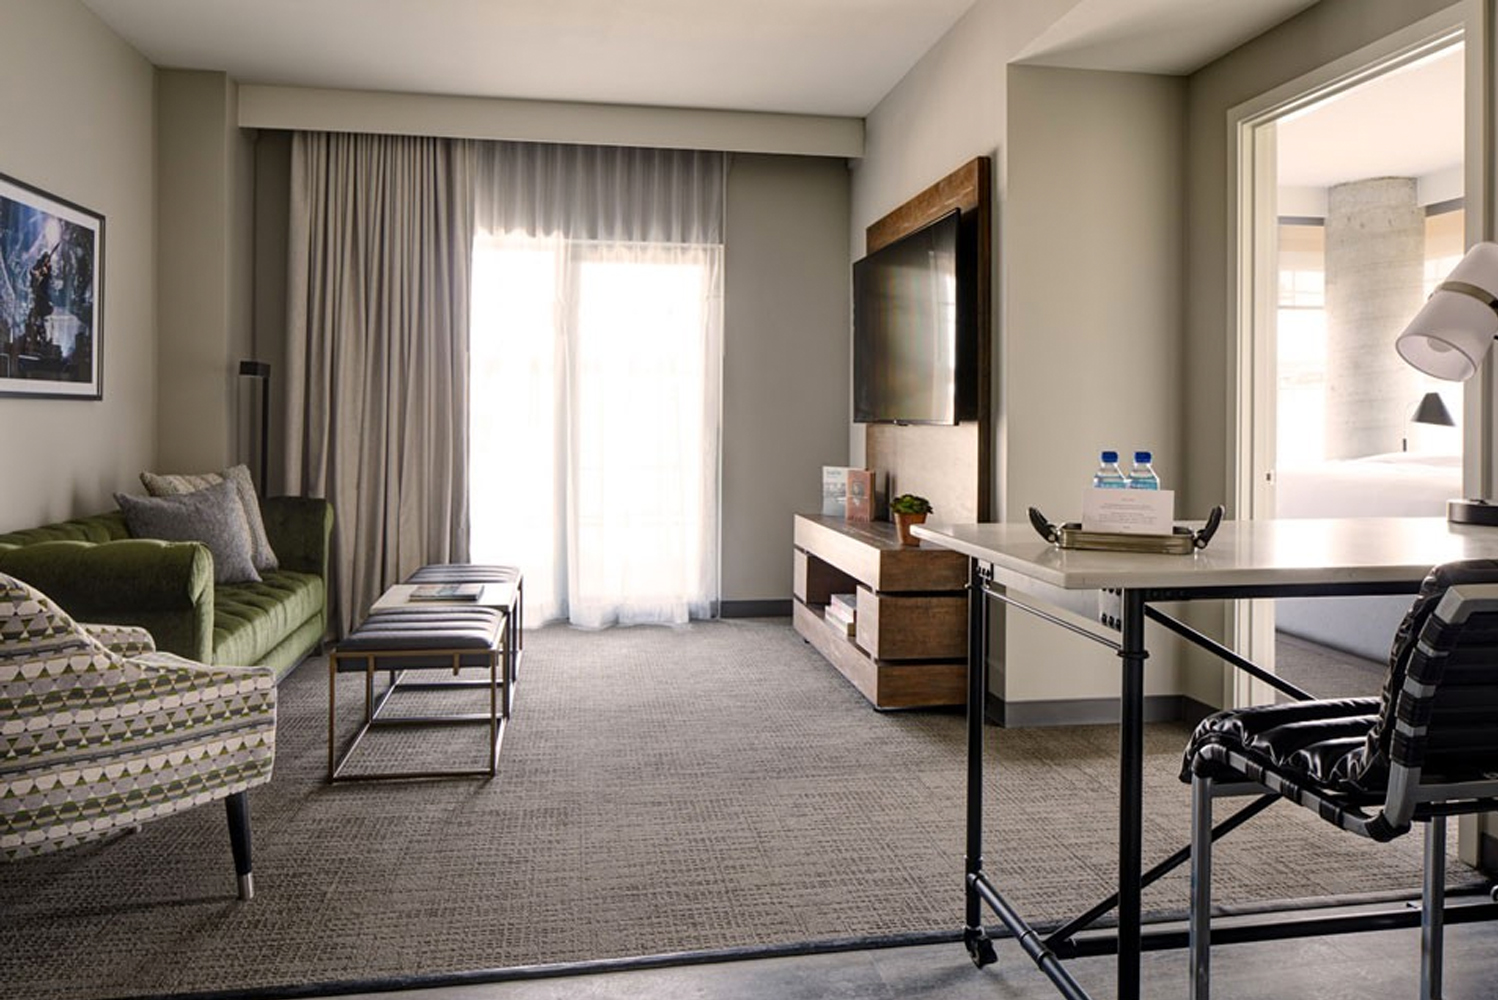 In-room amenities include: a work space, laptop safe, mini-refrigerator, flat-screen TV, device charging, alarm clock and radio.